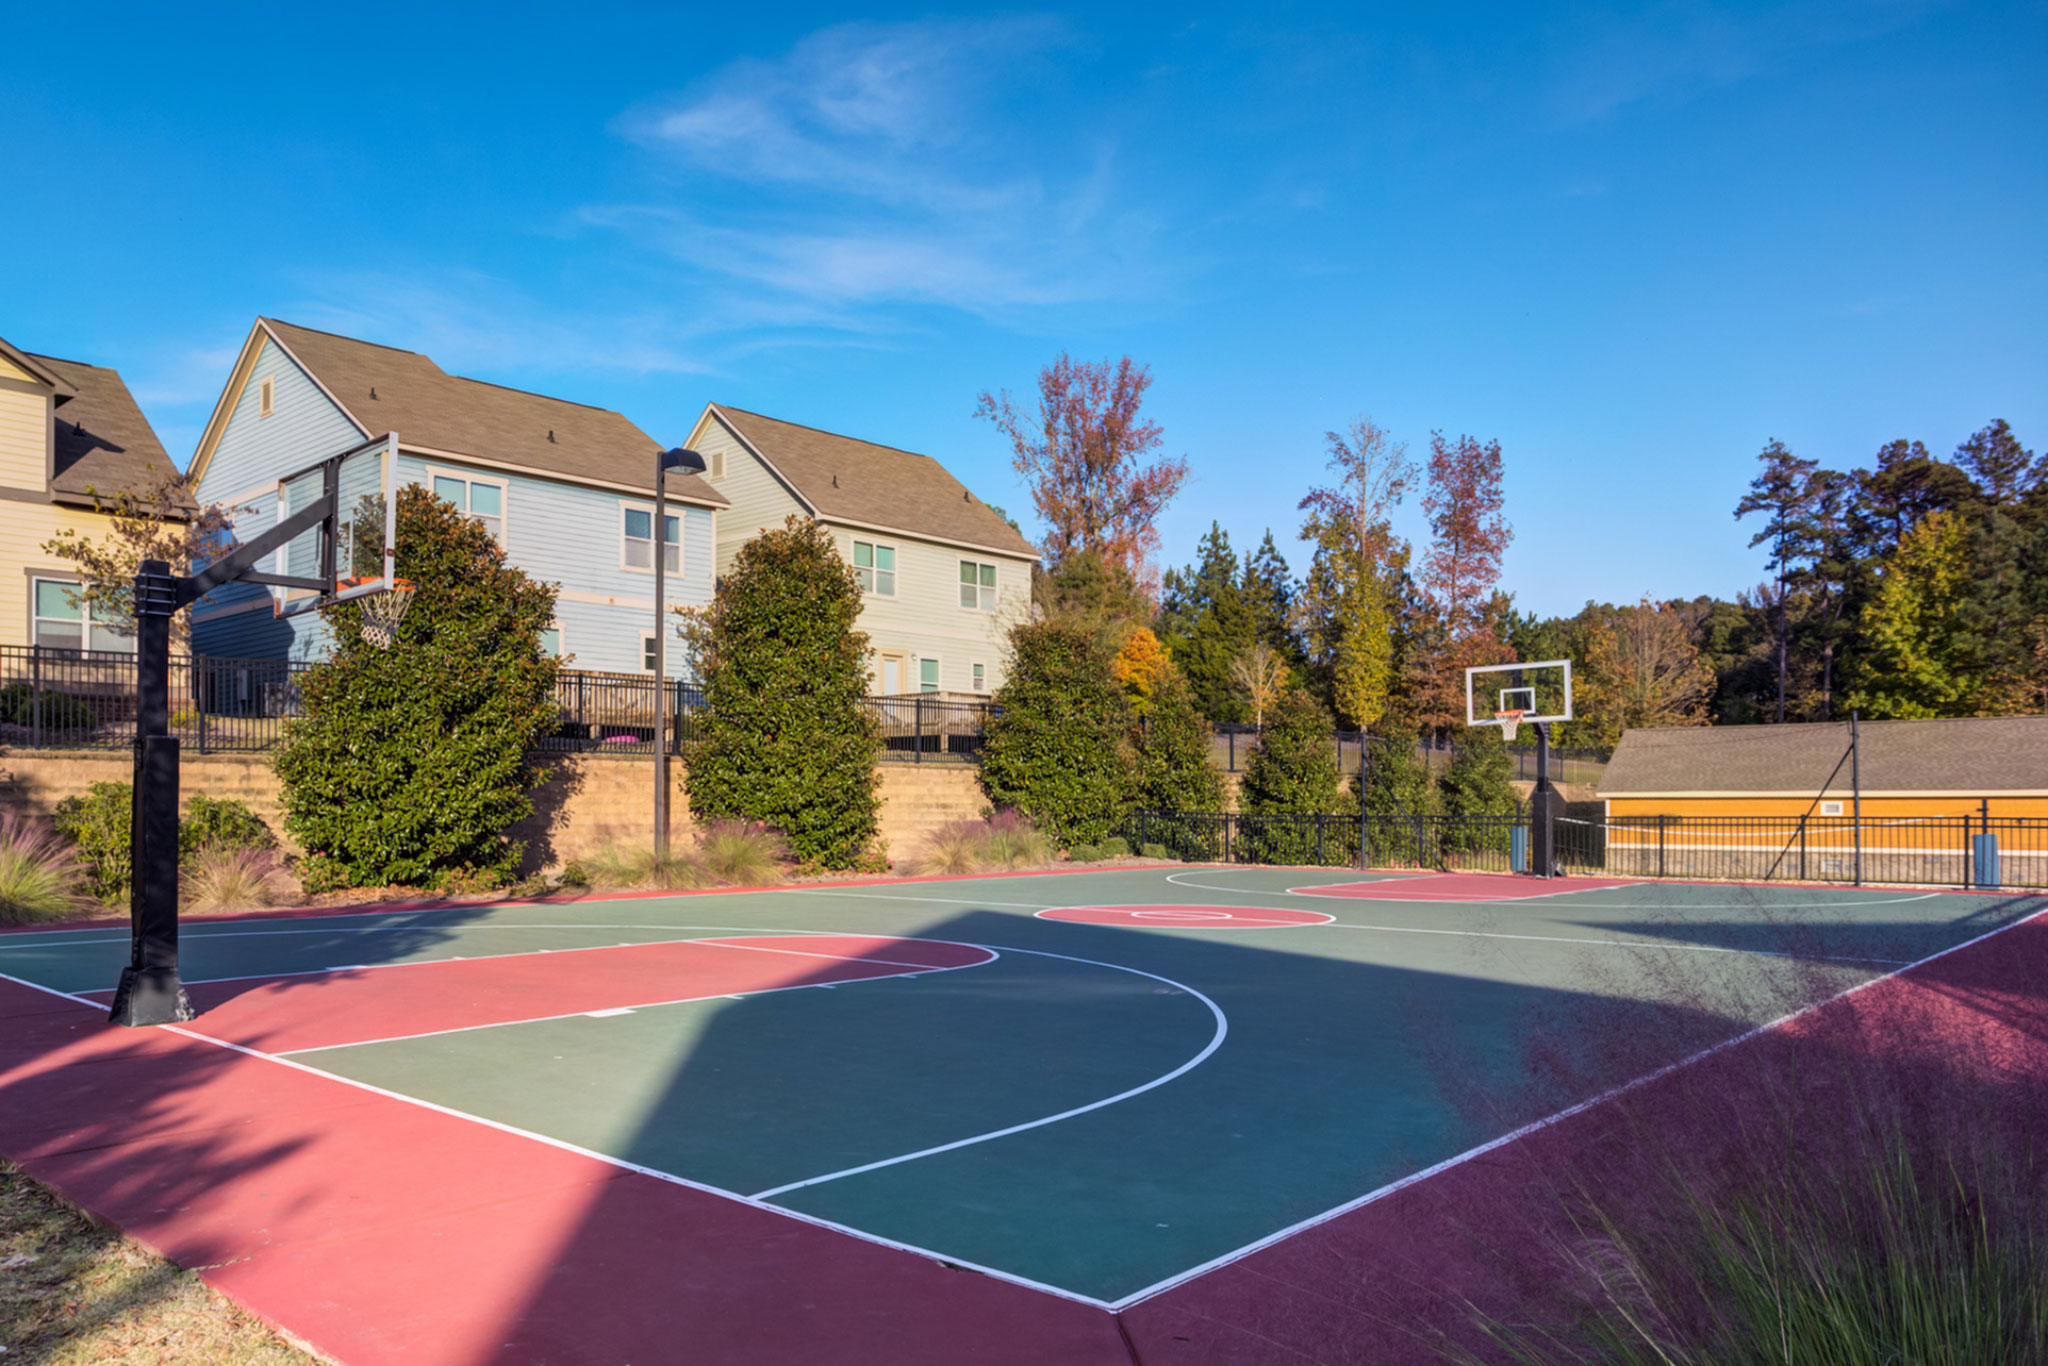 College Town Oxford Outdoor Basketball Court